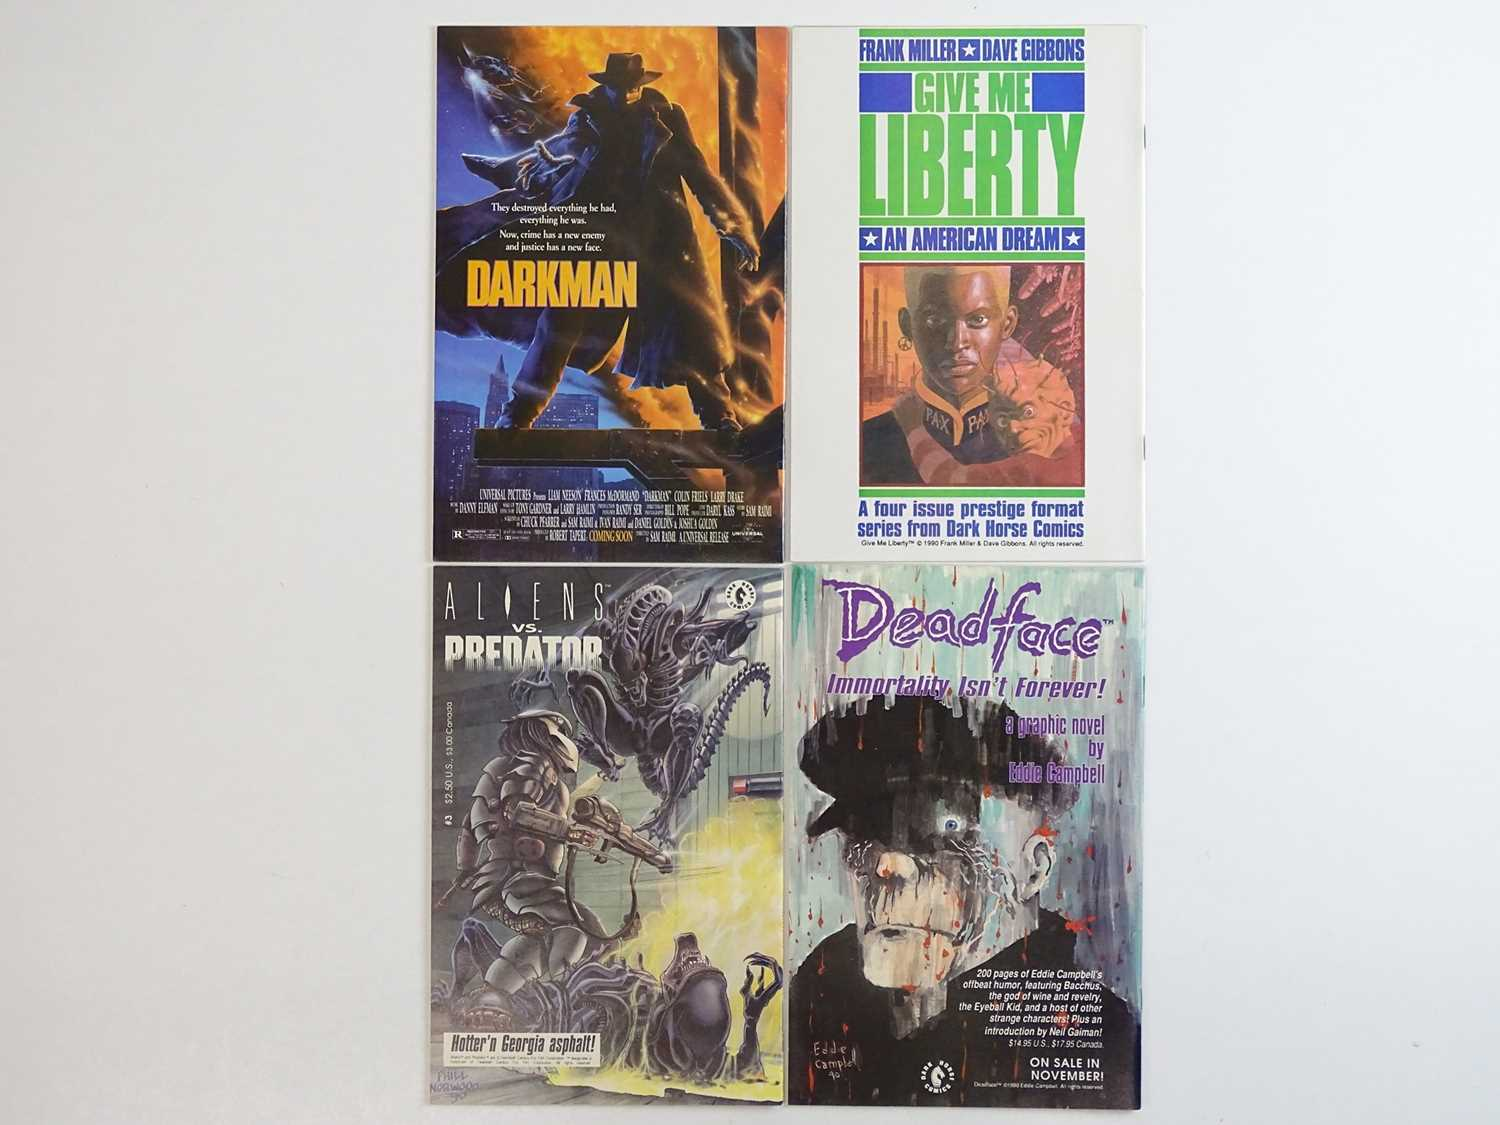 TERMINATOR #1, 2, 3, 4 - (4 in Lot) - (1990 - DARK HORSE) - ALL First Printings - Complete 4 x Issue - Image 2 of 2